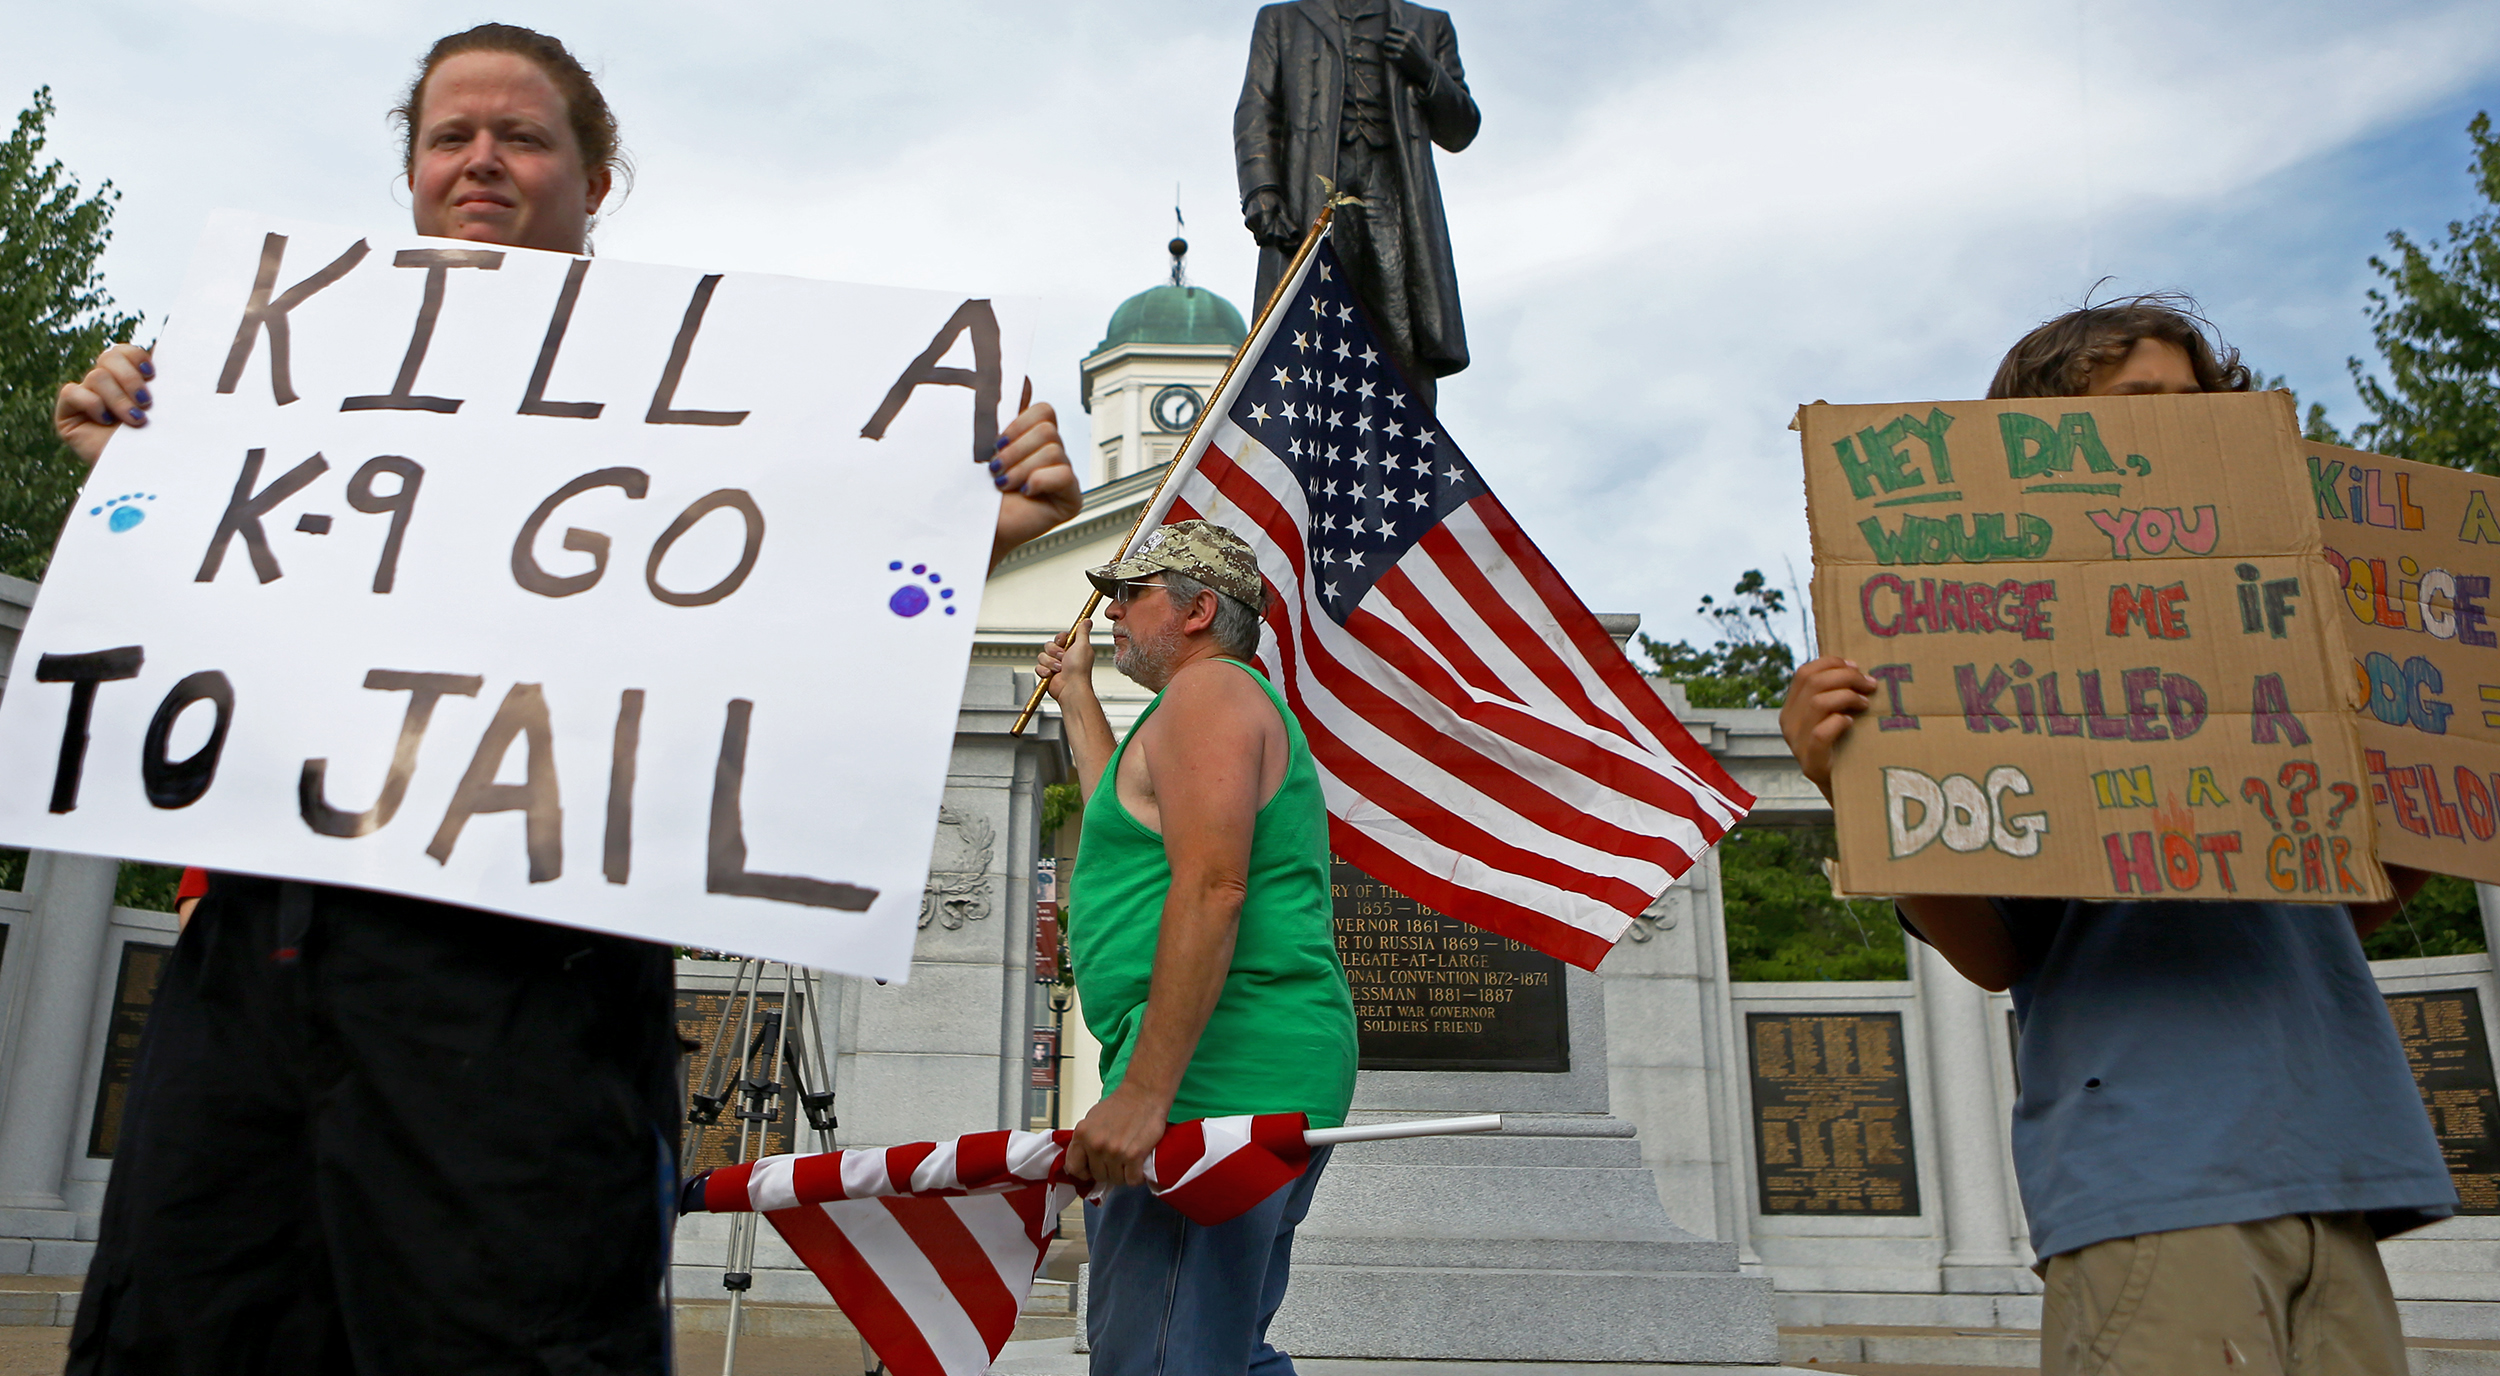 Tim Wian, center, of Phillipsburg flies the American flag as other Centre County residents hold signs on Allegheny Street in Bellefonte on Monday, July 18, 2016 calling for justice for Totti, a Department of Corrections drug detection dog that died after being locked in a hot car for over two hours.